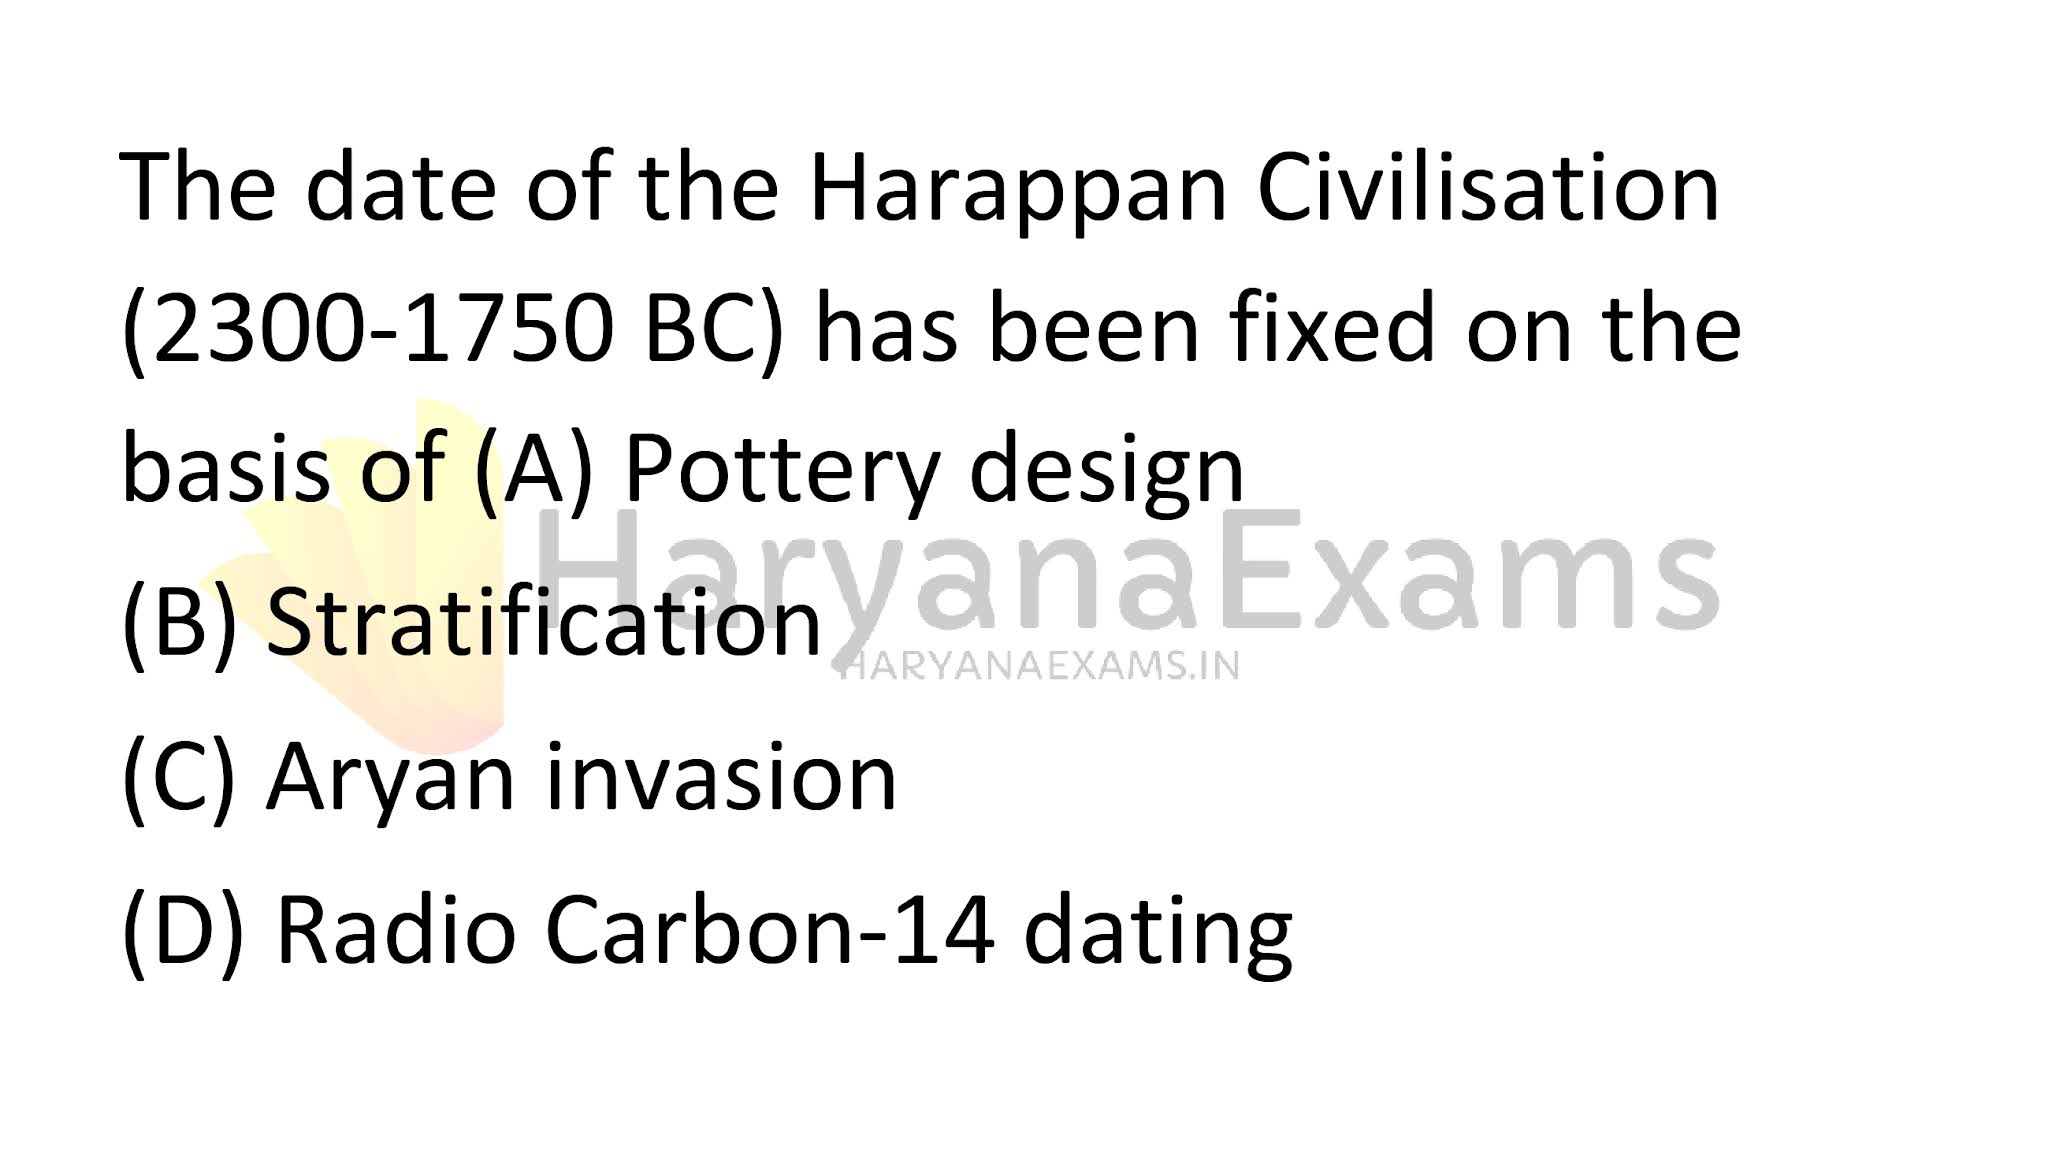 The date of the Harappan Civilisation (2300-1750 BC) has been fixed on the basis of (A) Pottery design